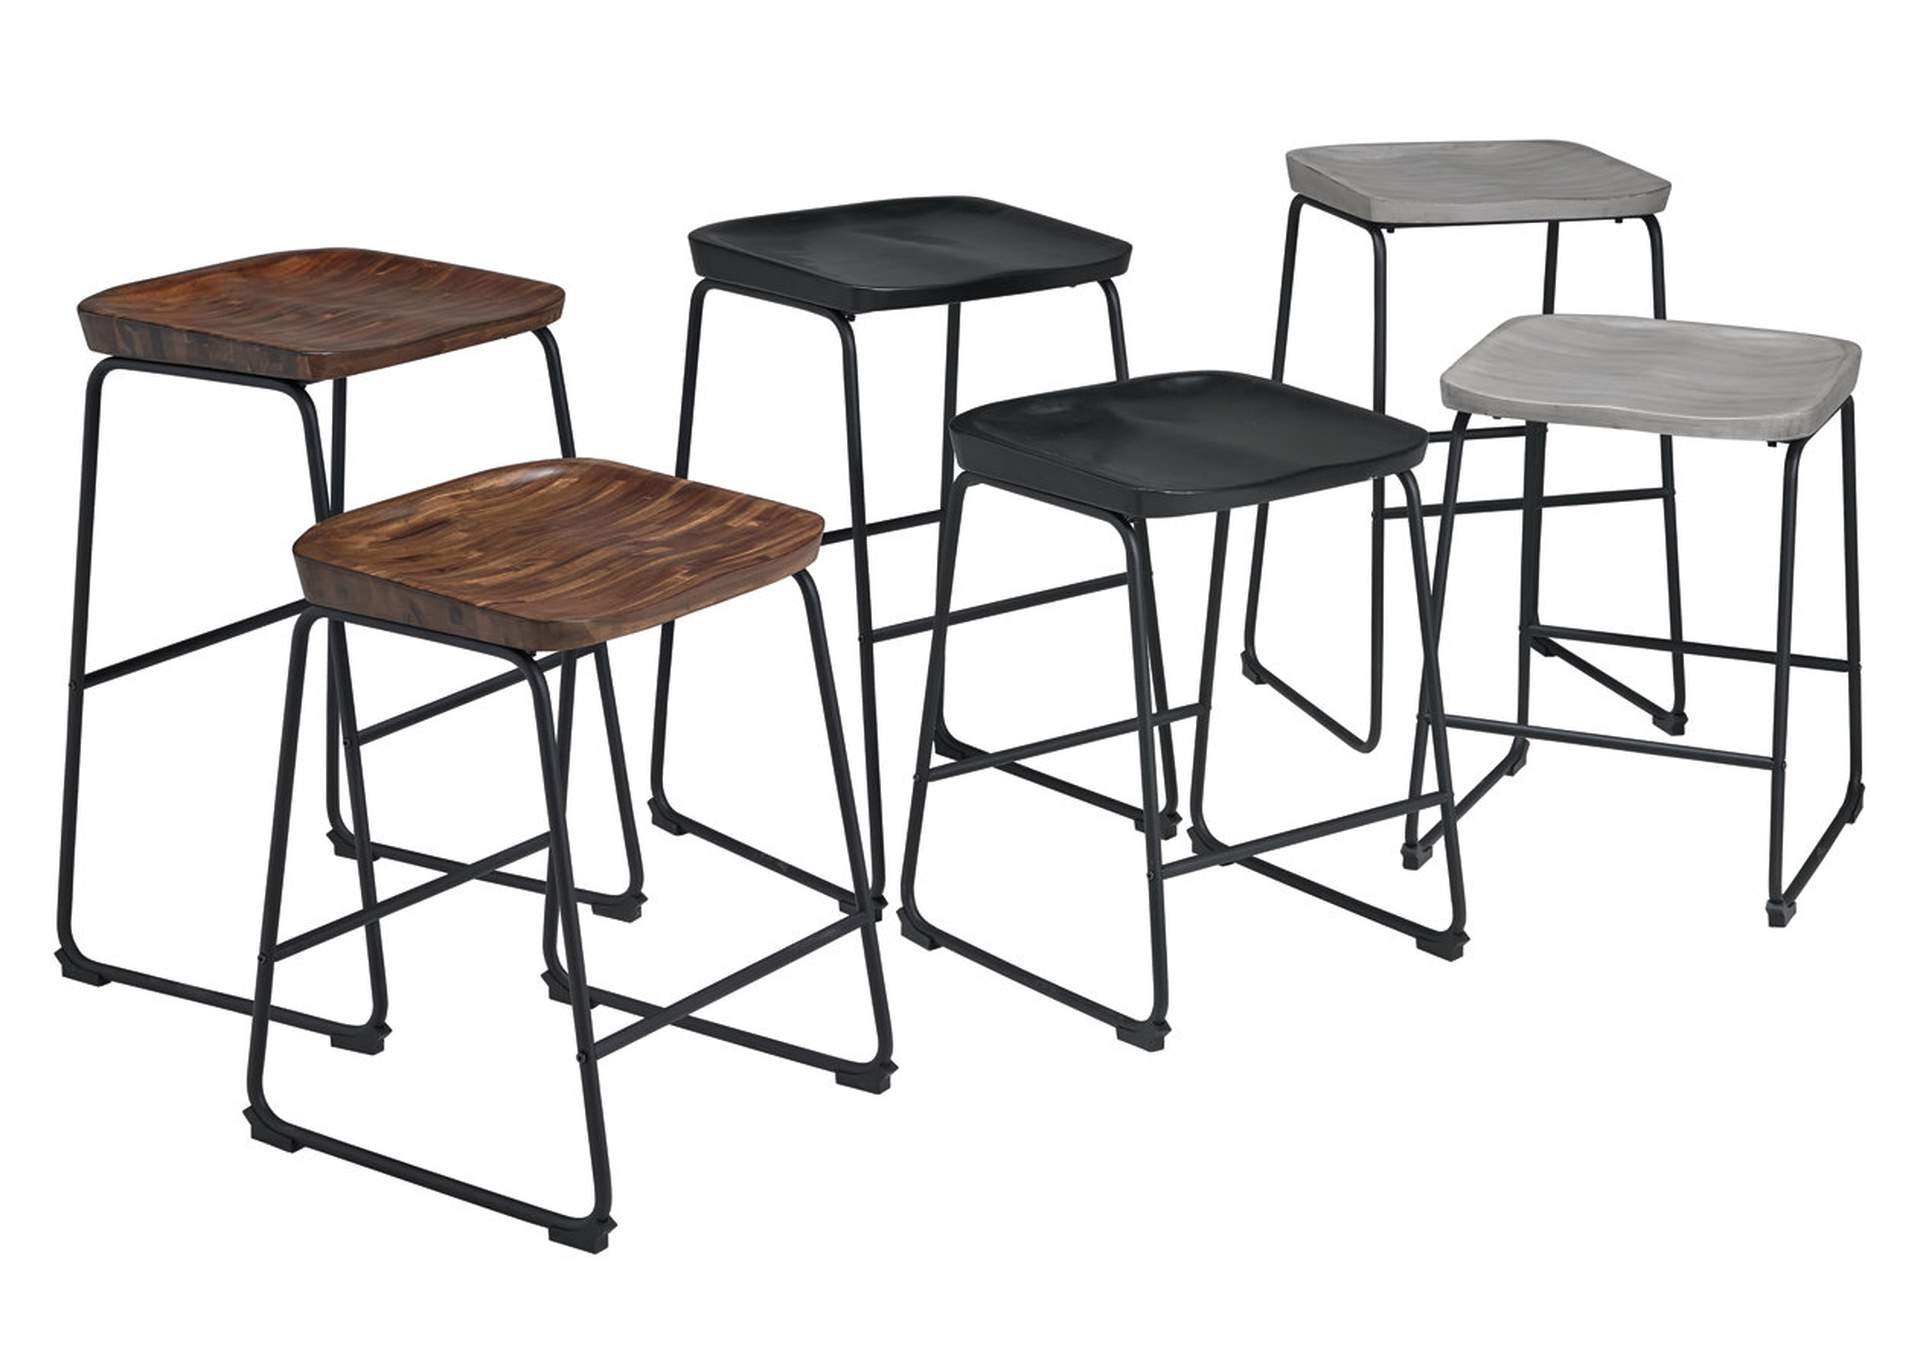 Showdell Counter Height Bar Stool,Signature Design By Ashley